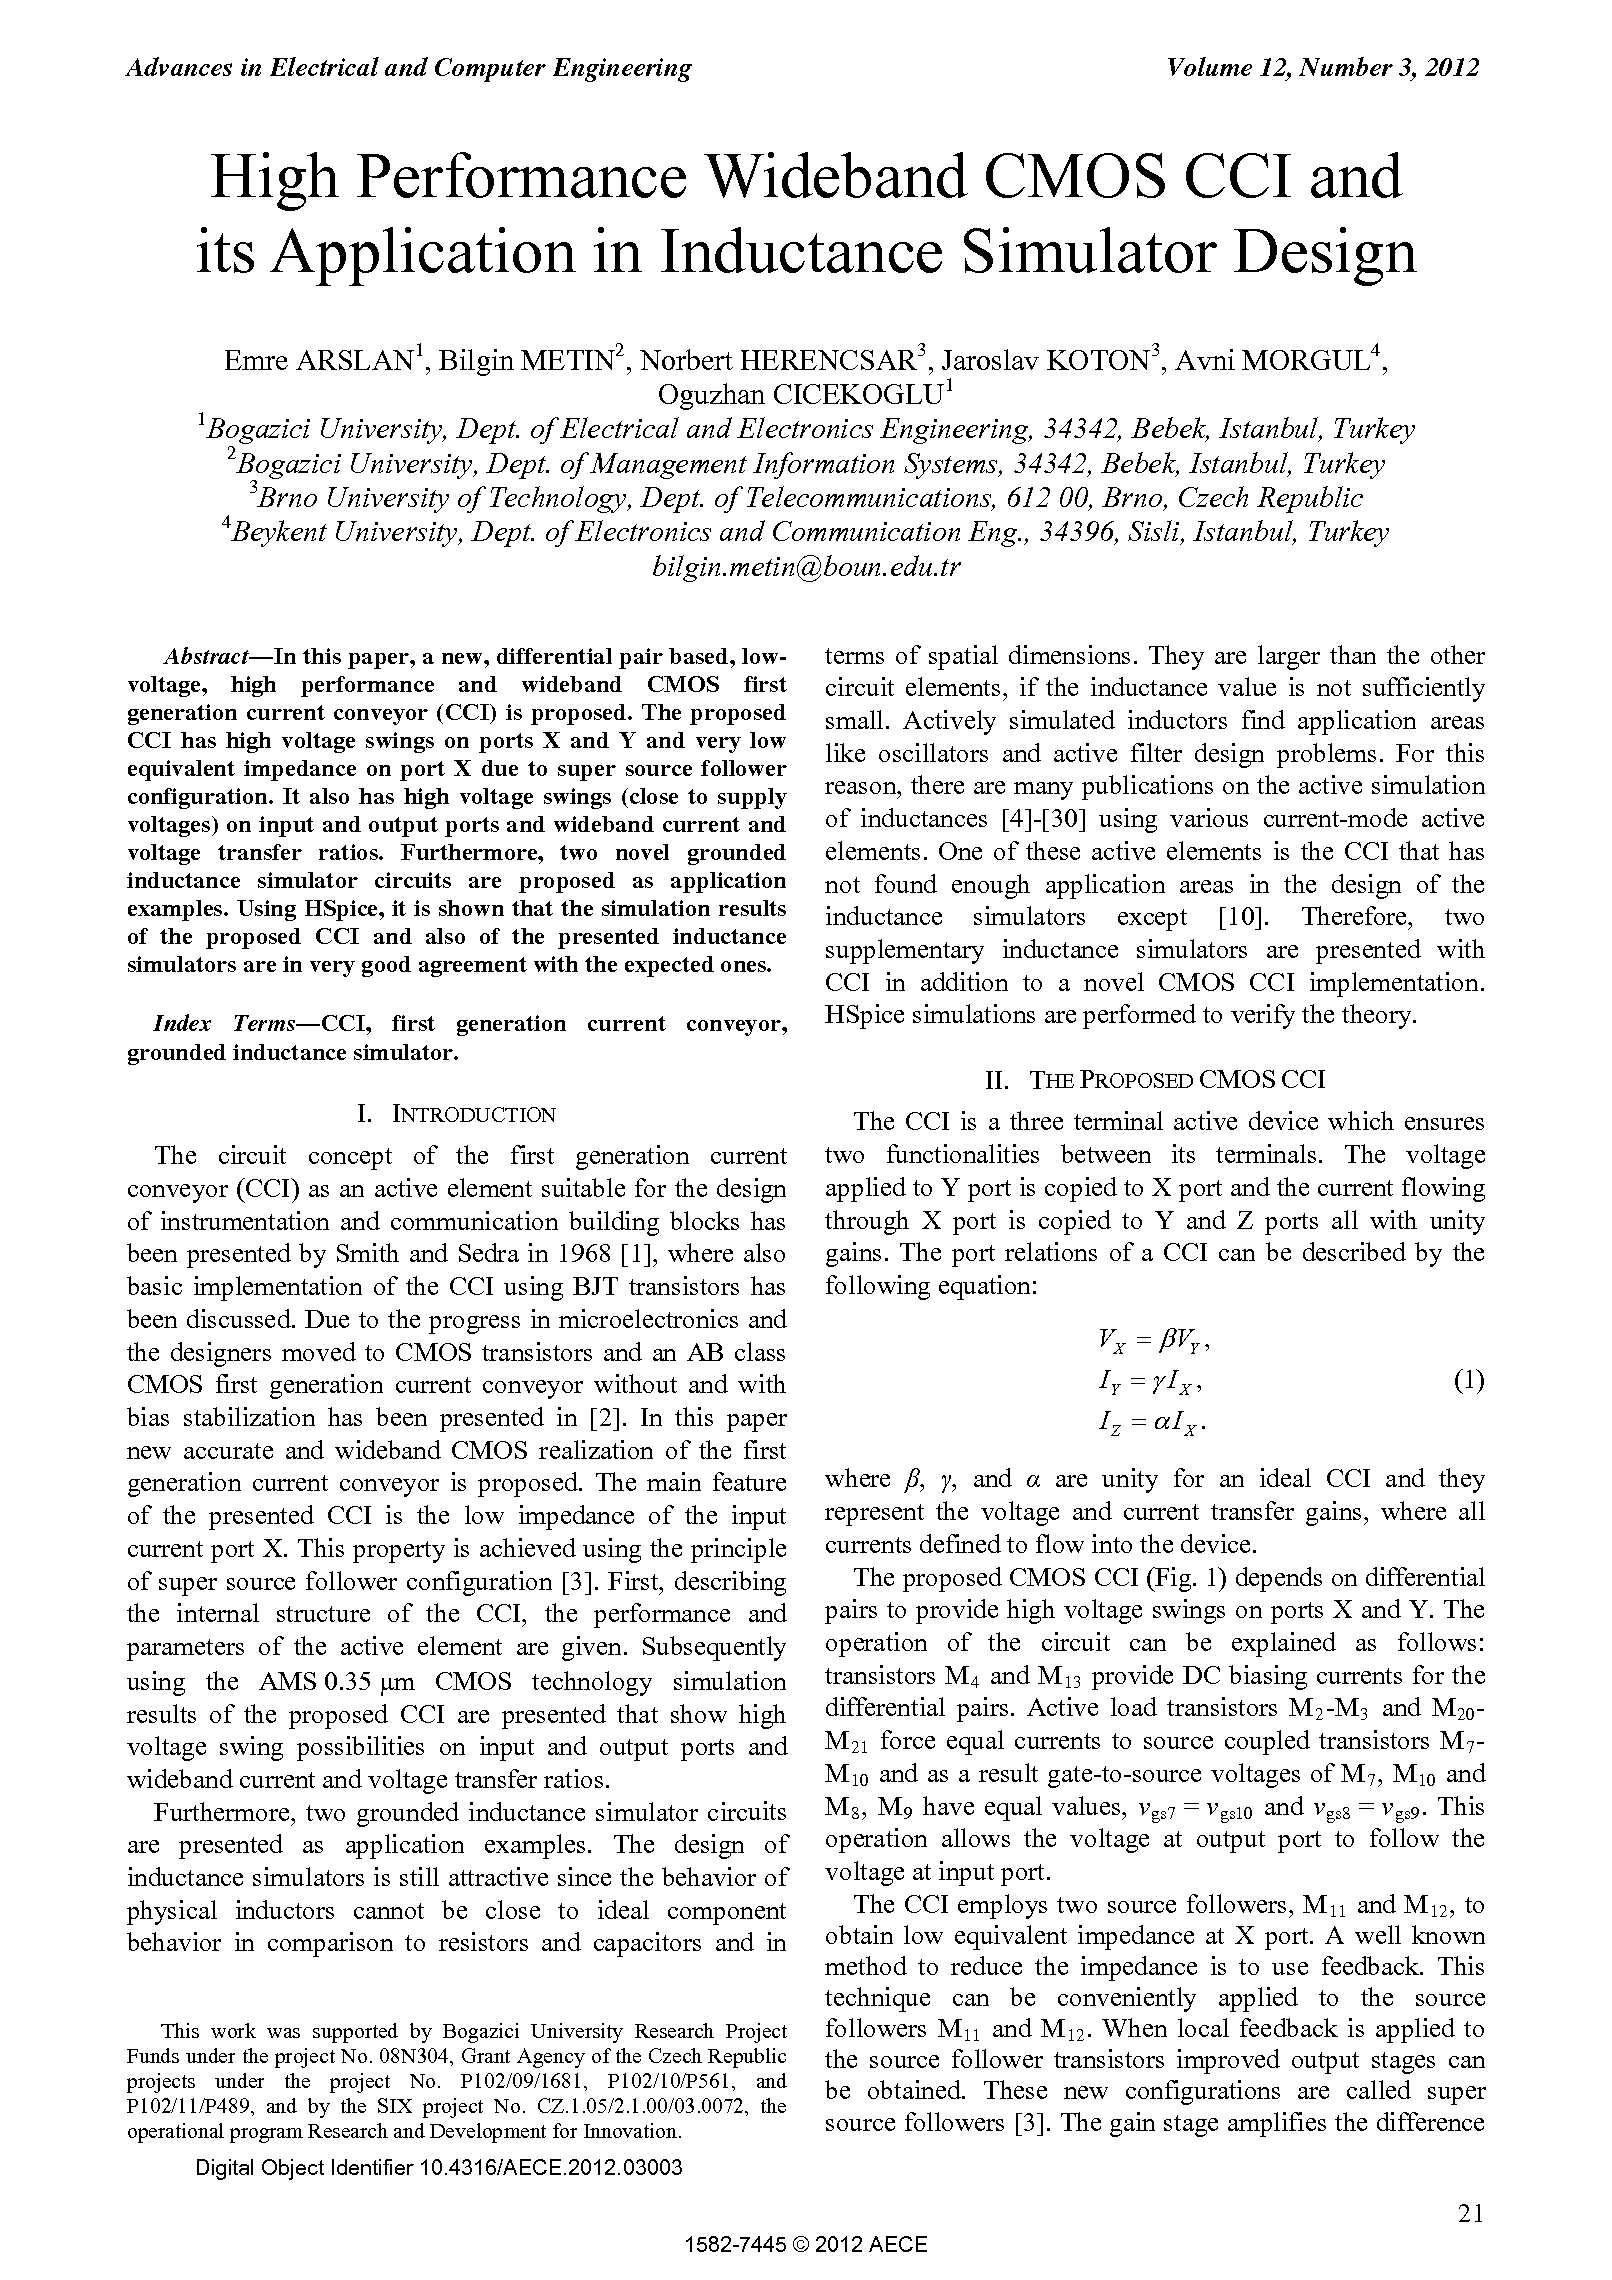 PDF Quickview for paper with DOI:10.4316/AECE.2012.03003